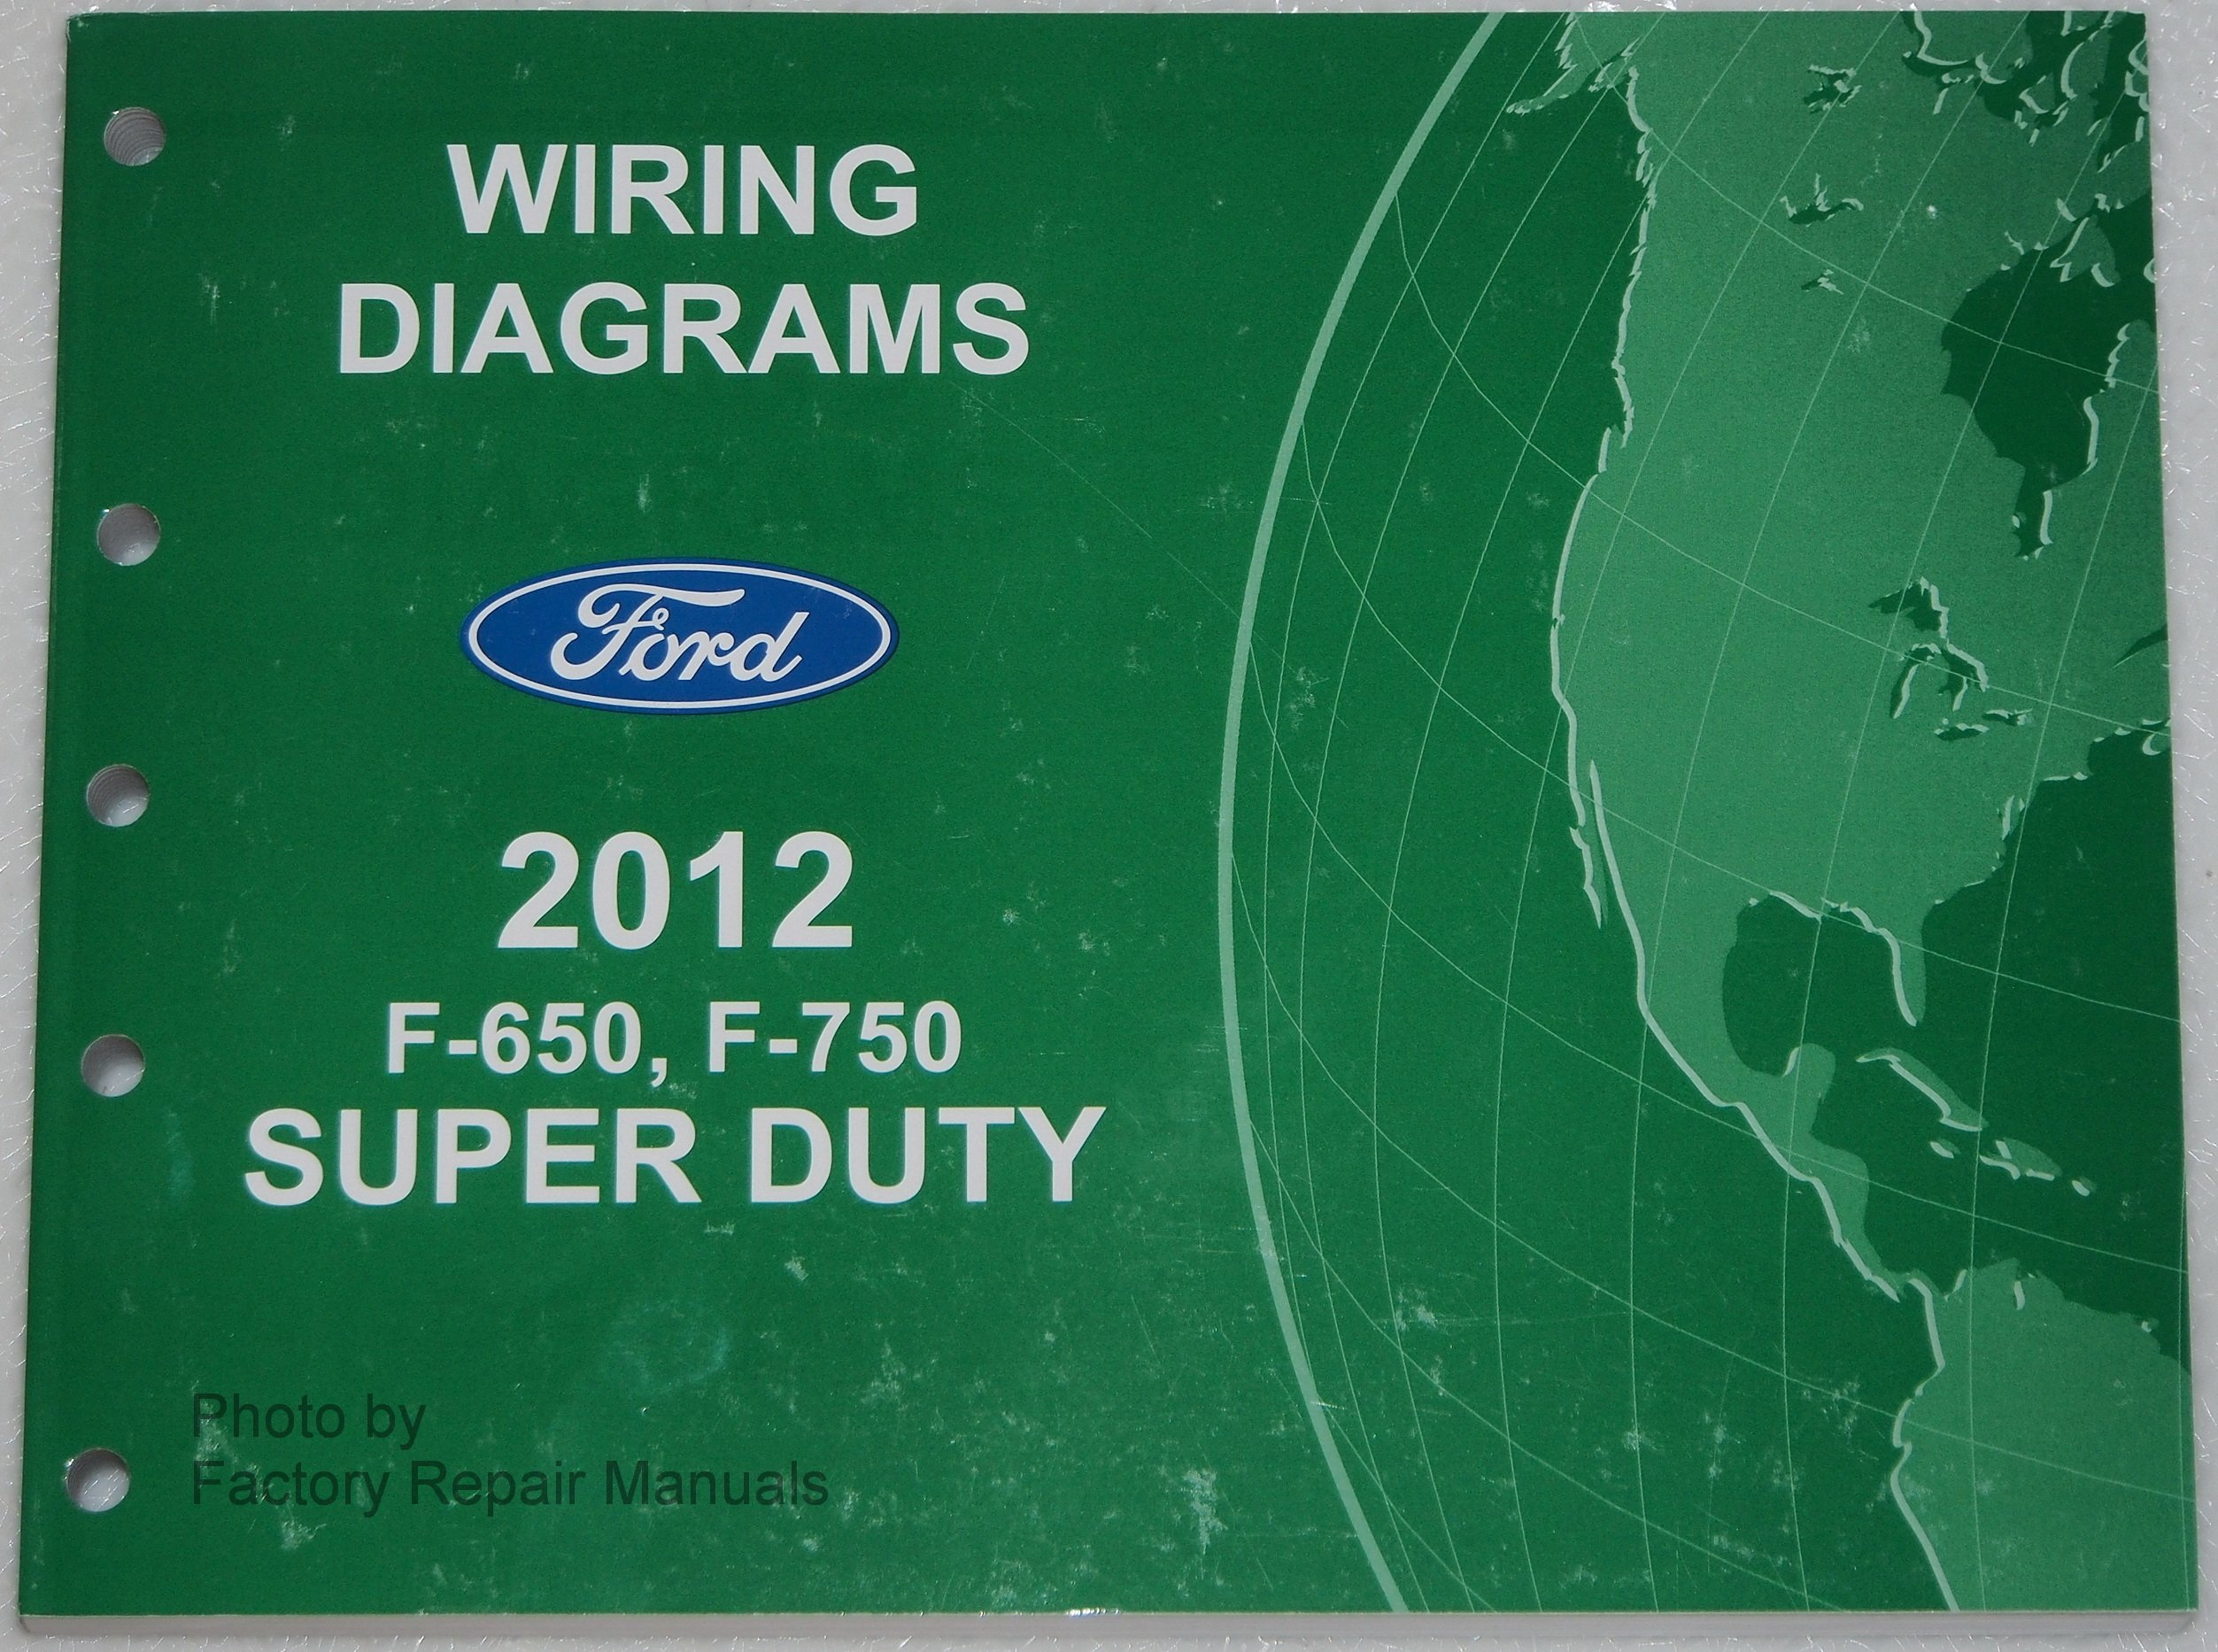 91KkFIScY%2BL 2012 f650 f750 wiring diagram ford motor company amazon com books 2013 ford wiring diagram at bayanpartner.co